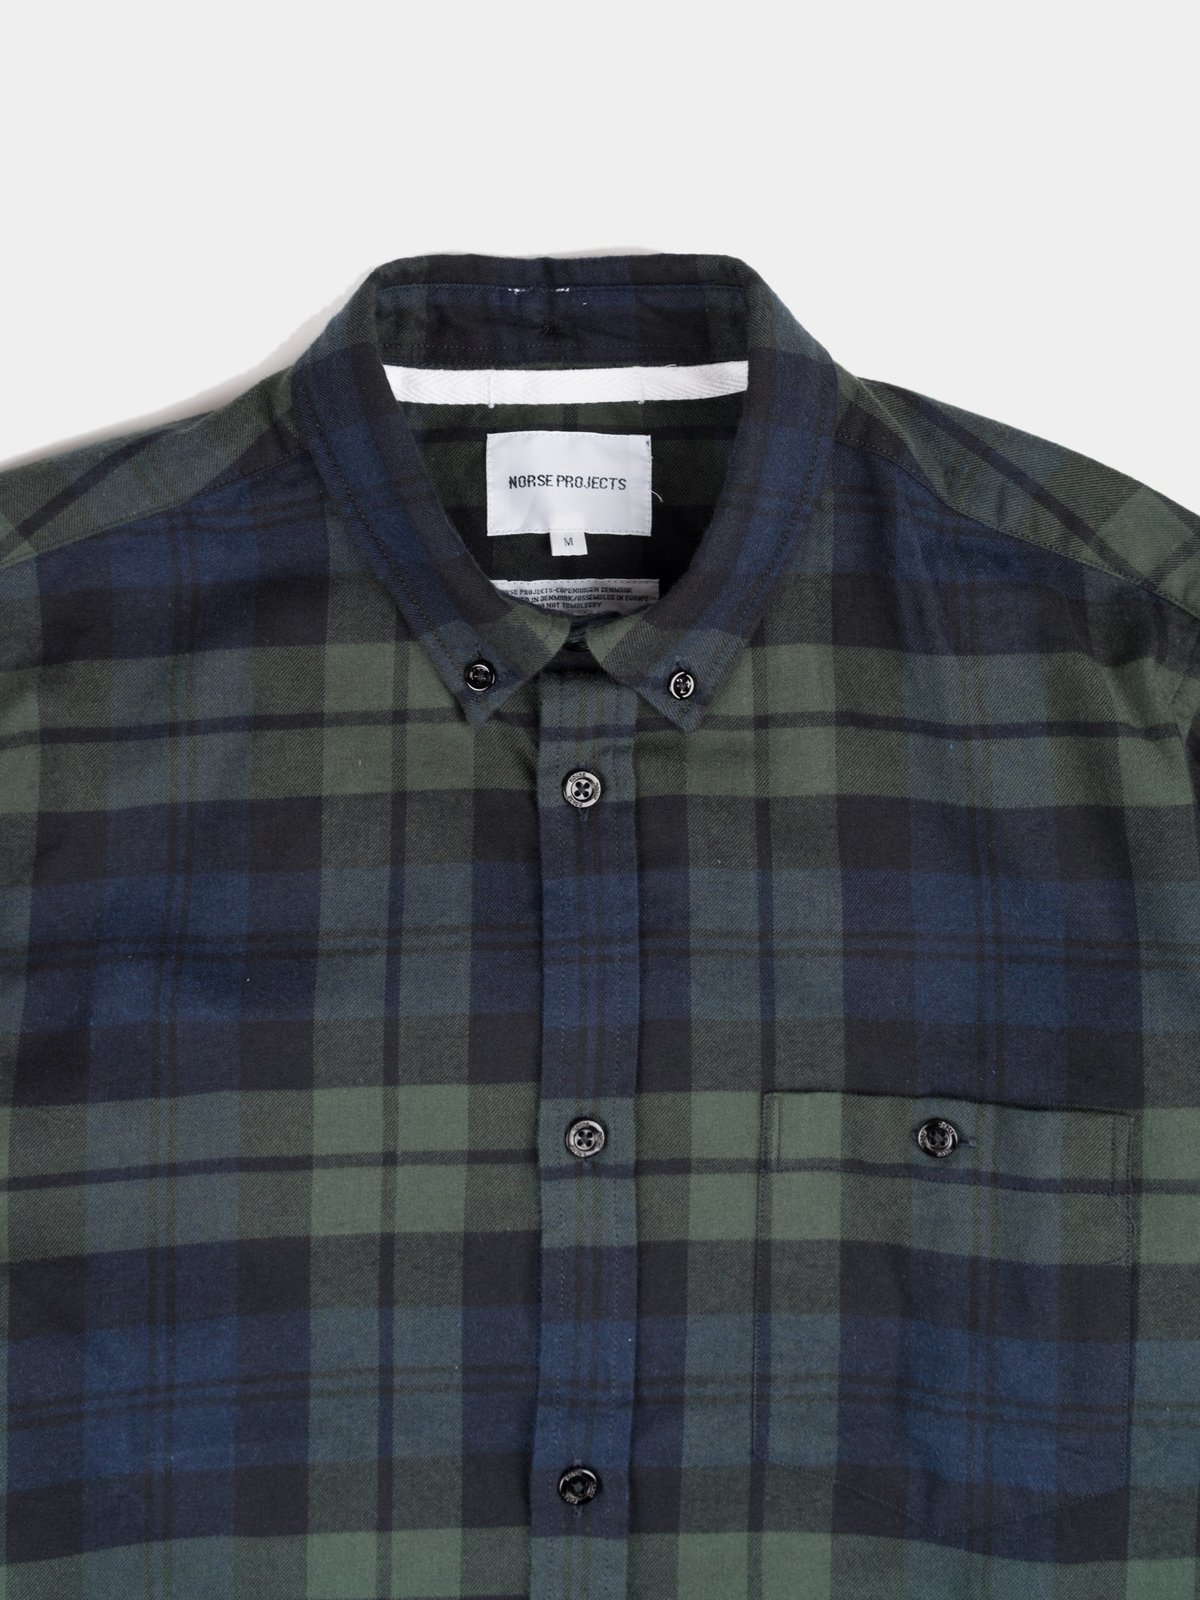 988369b0b7 Norse Projects Anton Flannel Check Shirt - Black Watch Check ...